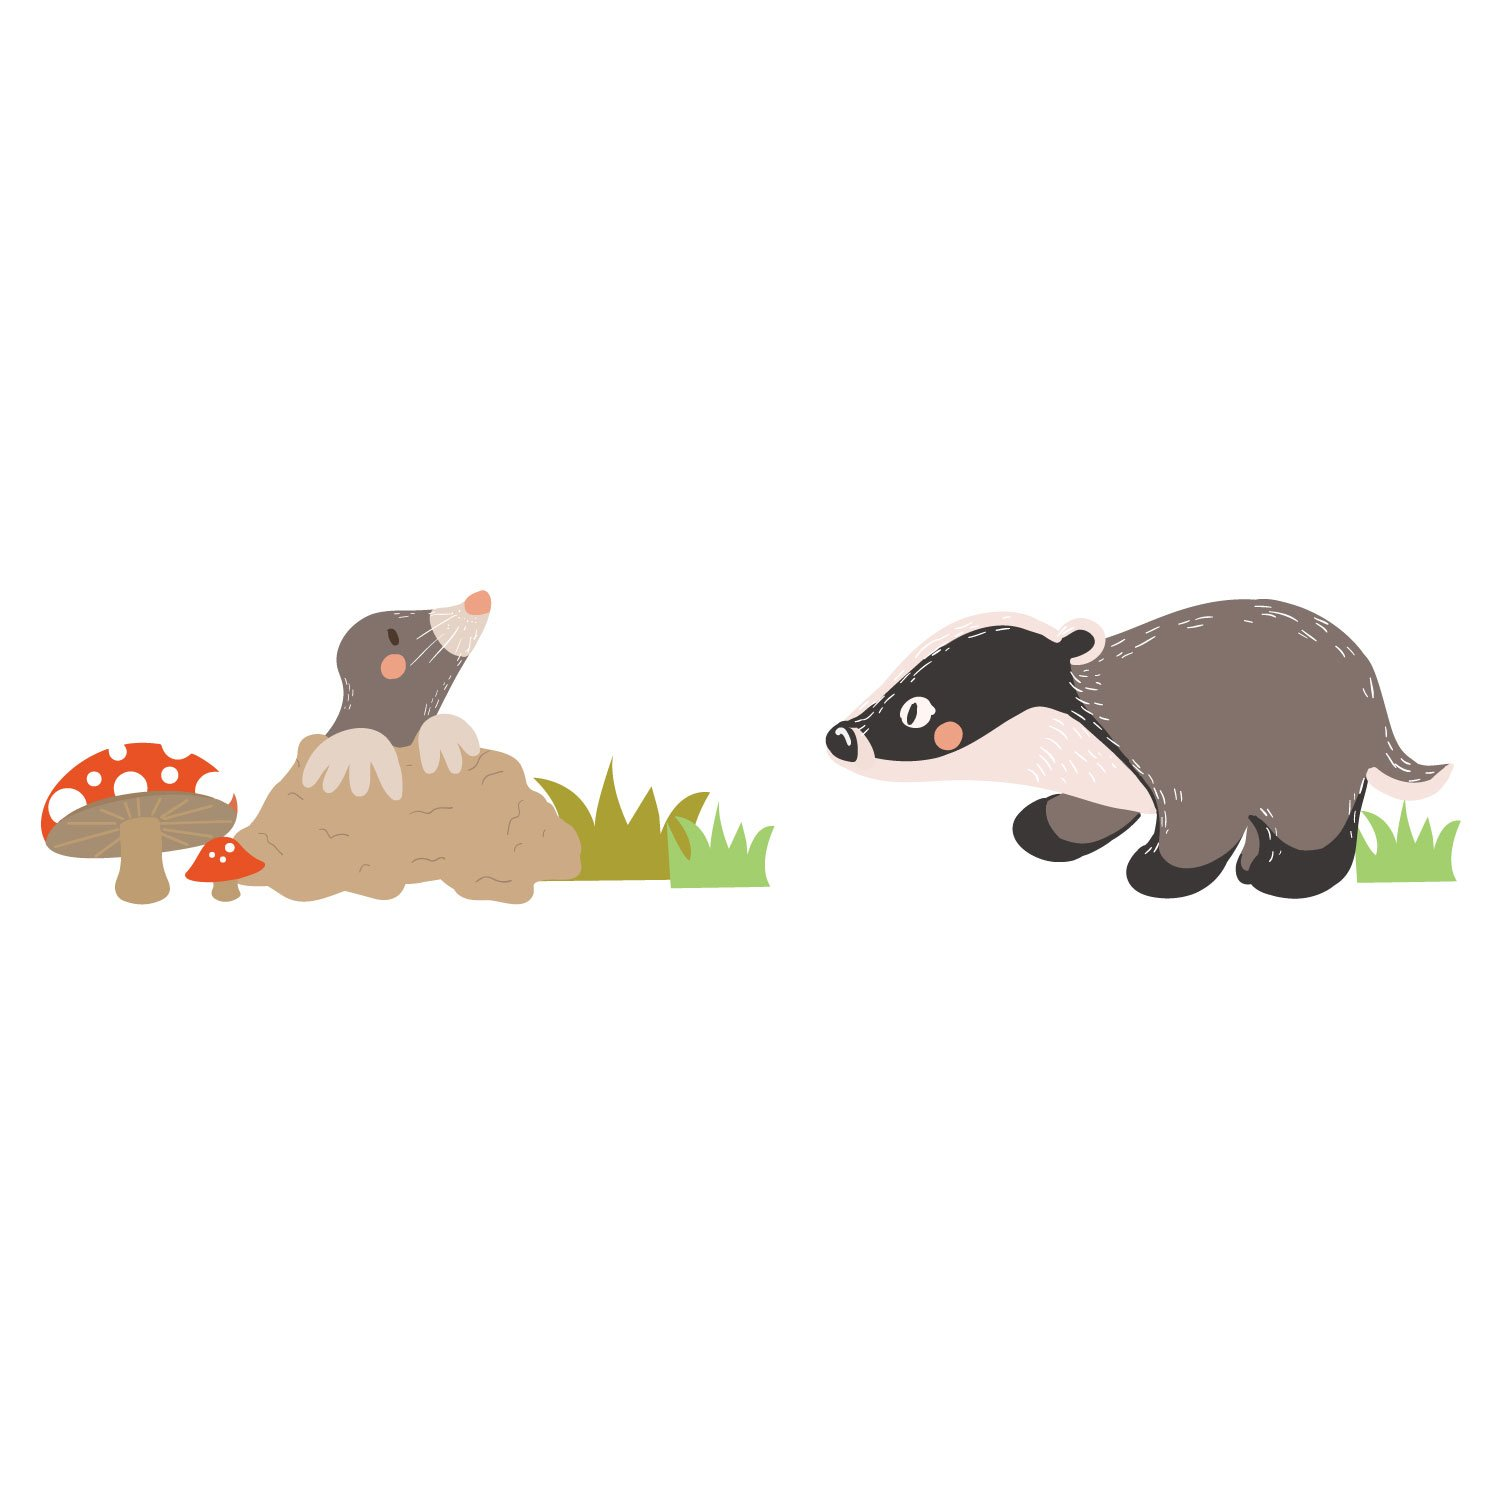 Badger and Mole wall sticker for baby's nursery, child's bedroom or playroom child' s bedroom or playroom Stickerscape